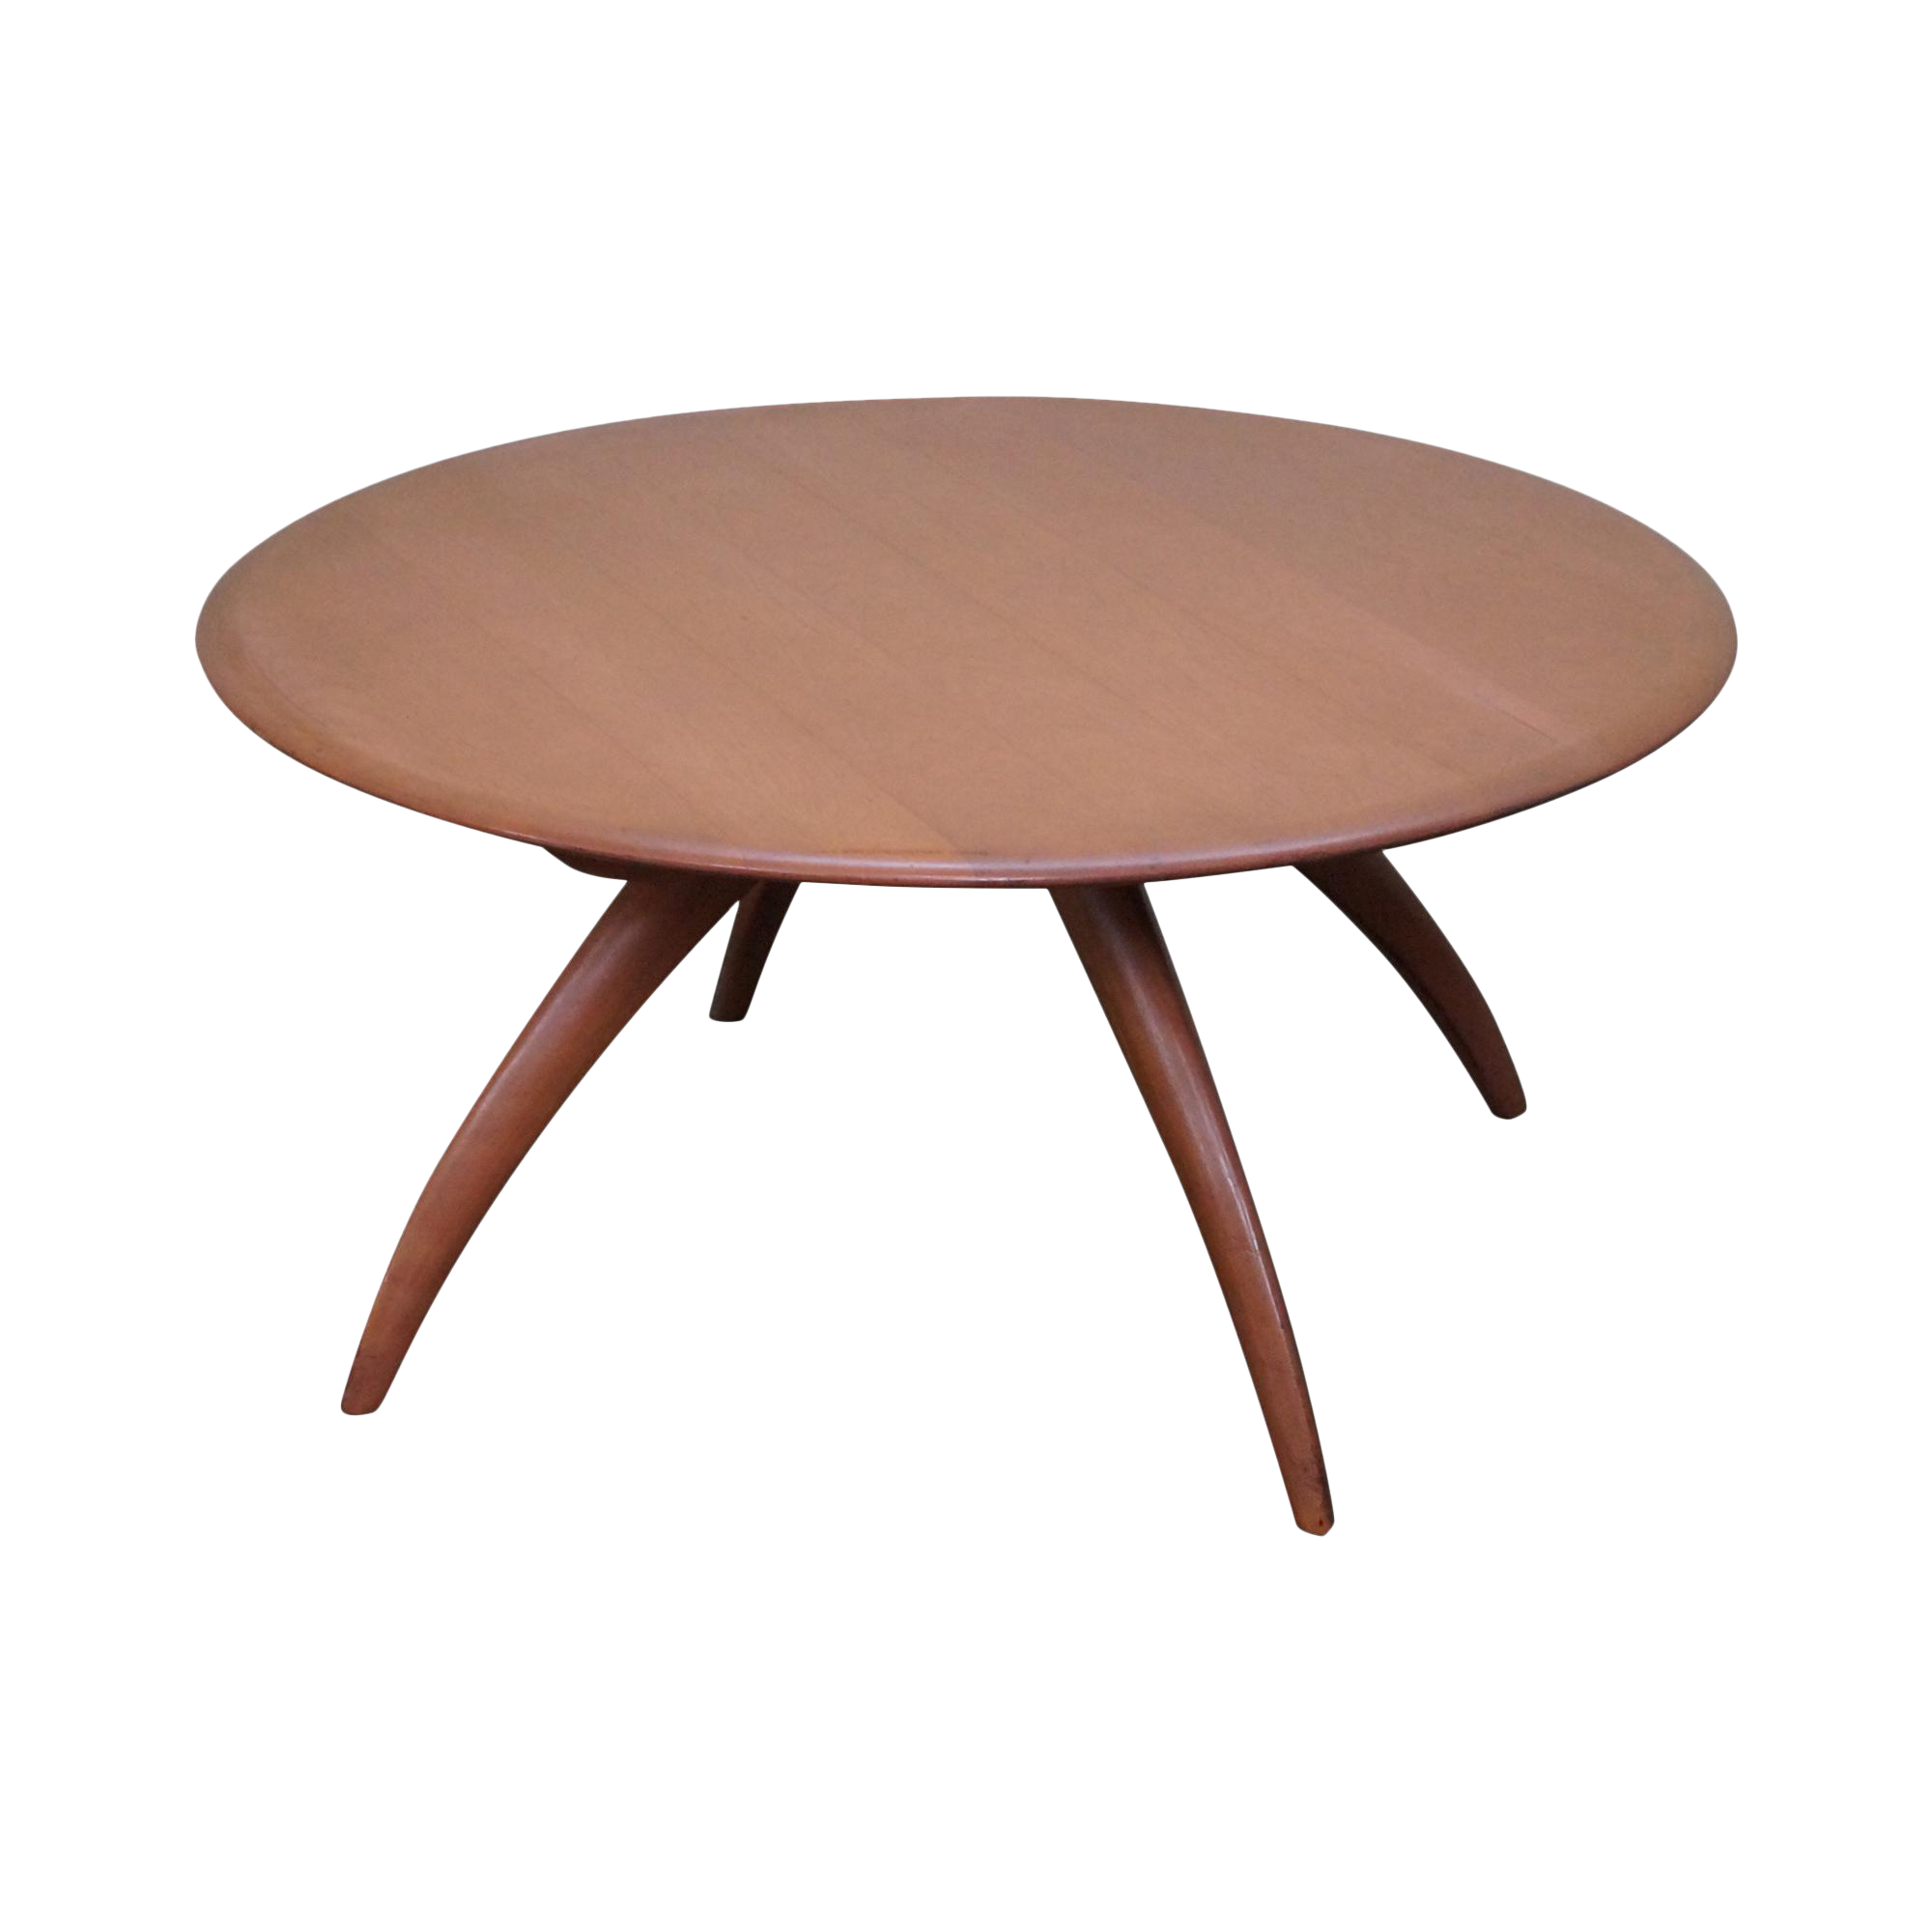 Heywood wakefield revolving maple coffee table chairish geotapseo Image collections